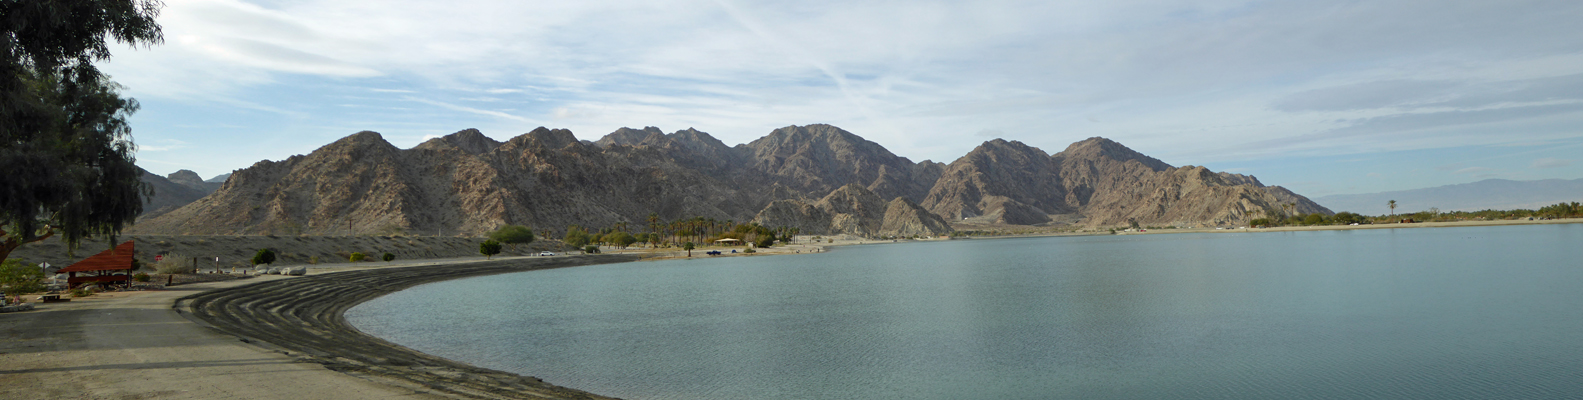 Lake Cahuilla from campground